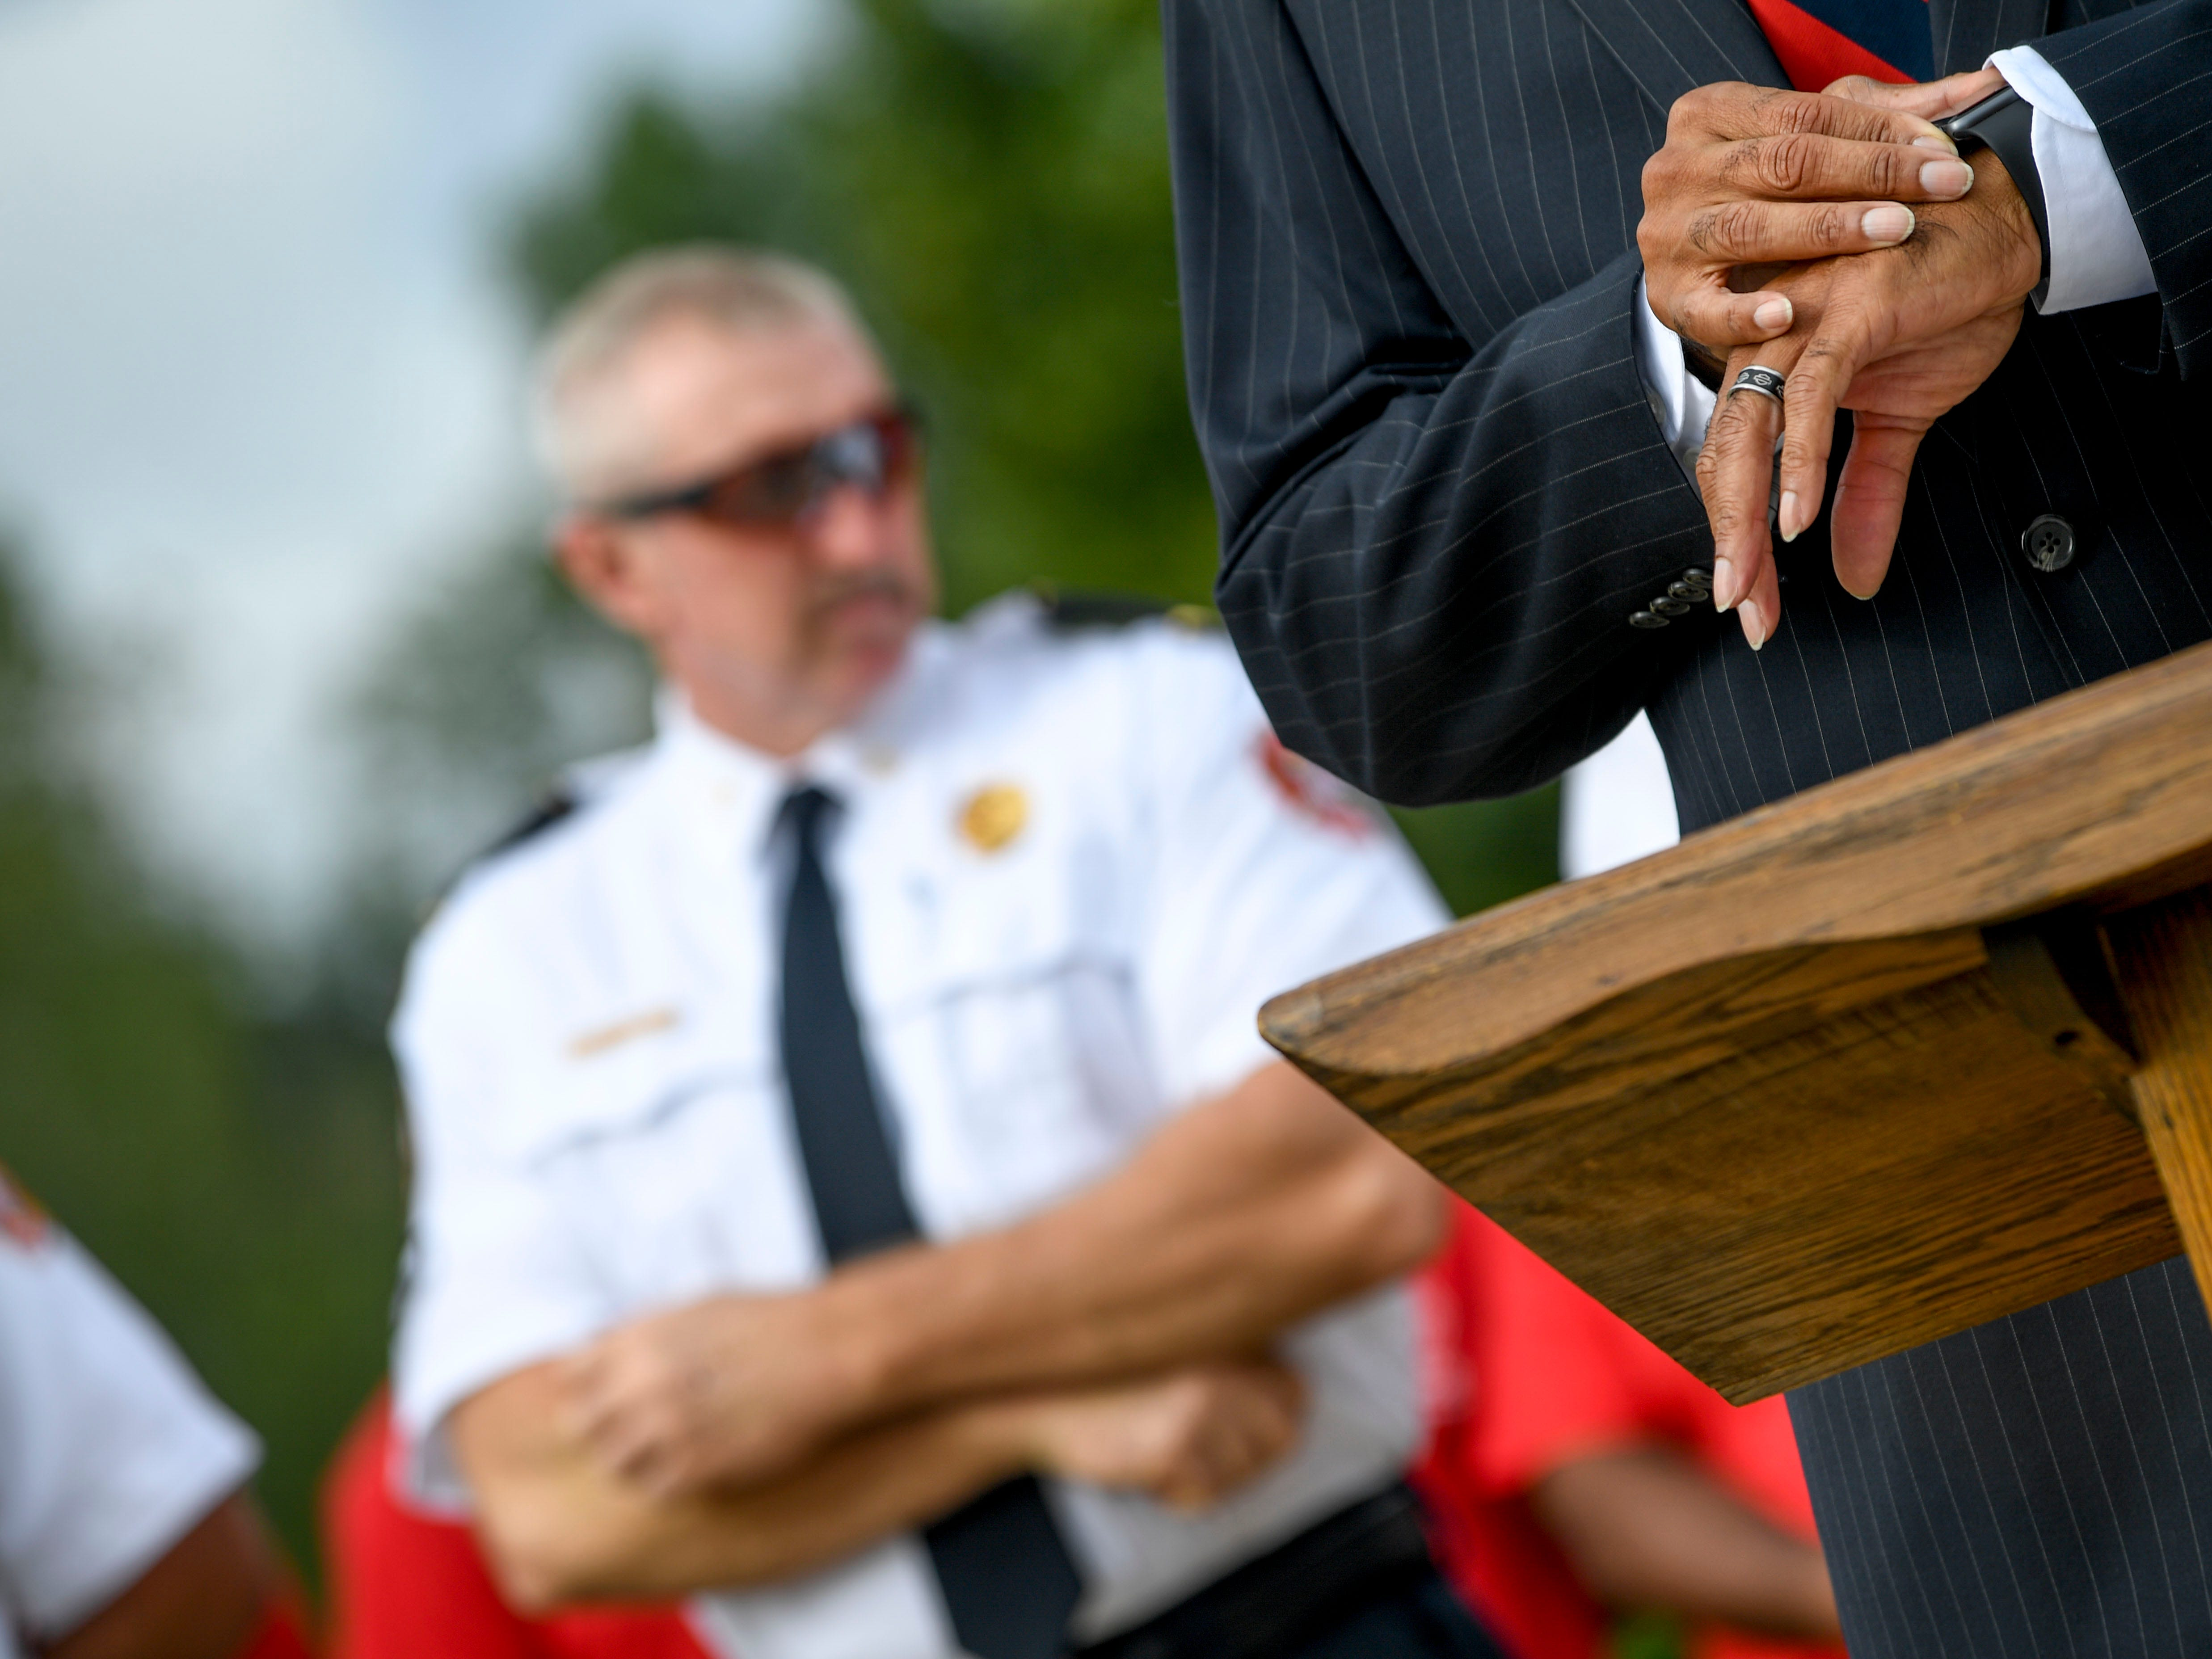 Fire Chief Darryl Samuels checks his watch before the start of a ceremony honoring the victims of the 9/11 attacks at Fire Station 3 in Jackson, Tenn., on Tuesday, Sept. 11, 2018.